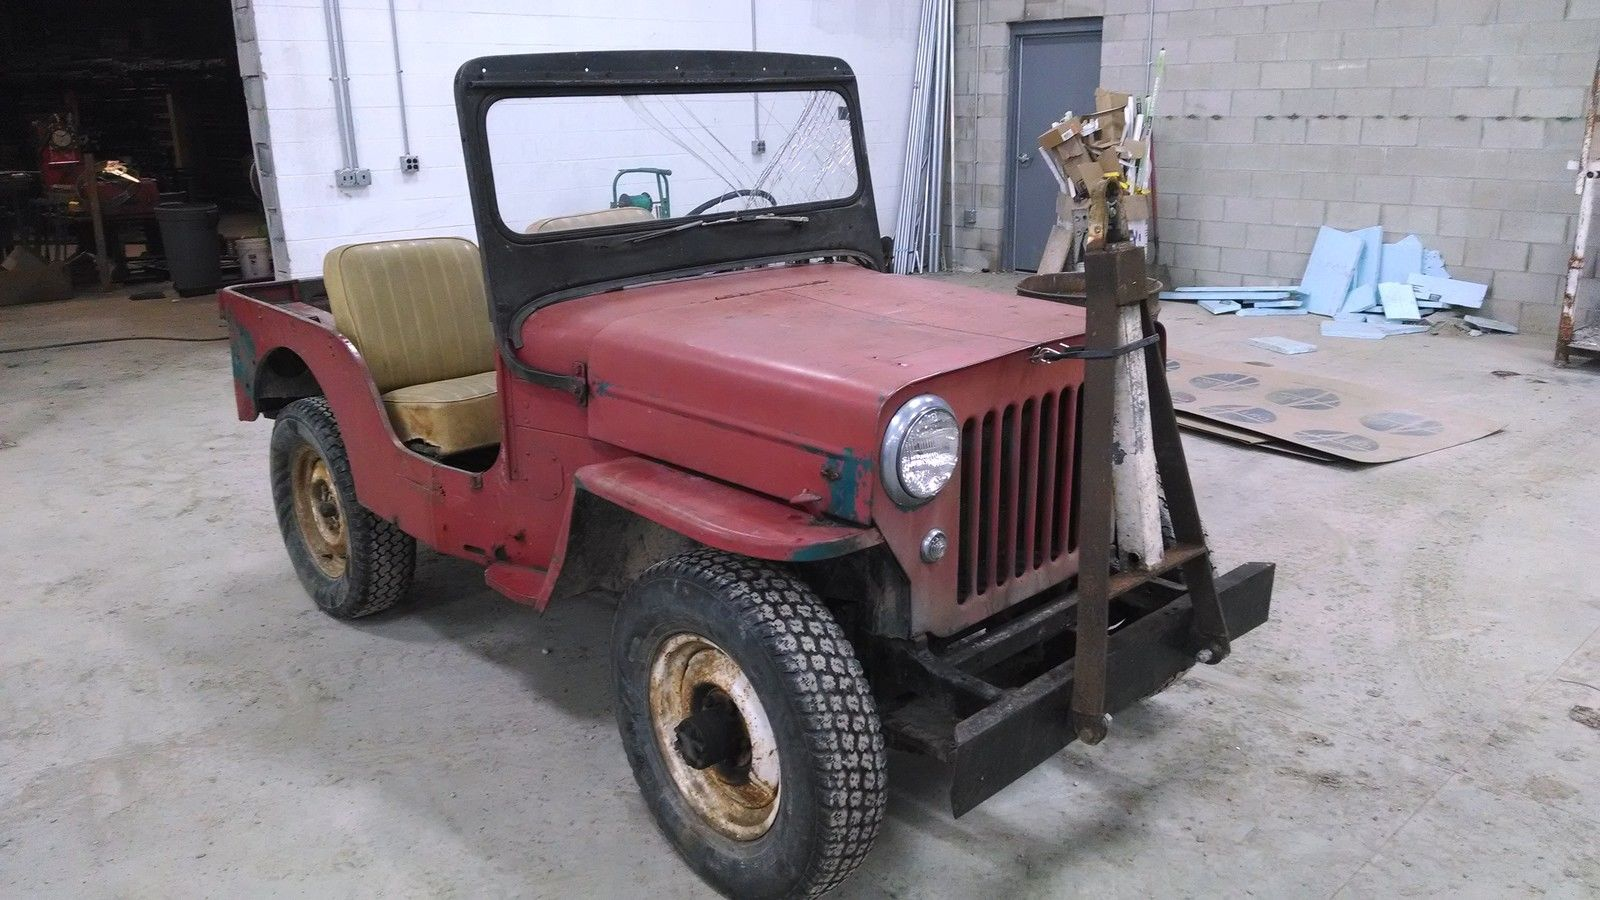 1964 willys cj3b jeep 3 spd 4wd oklahoma jeep all original rare classic jeep cj 1964 for sale. Black Bedroom Furniture Sets. Home Design Ideas